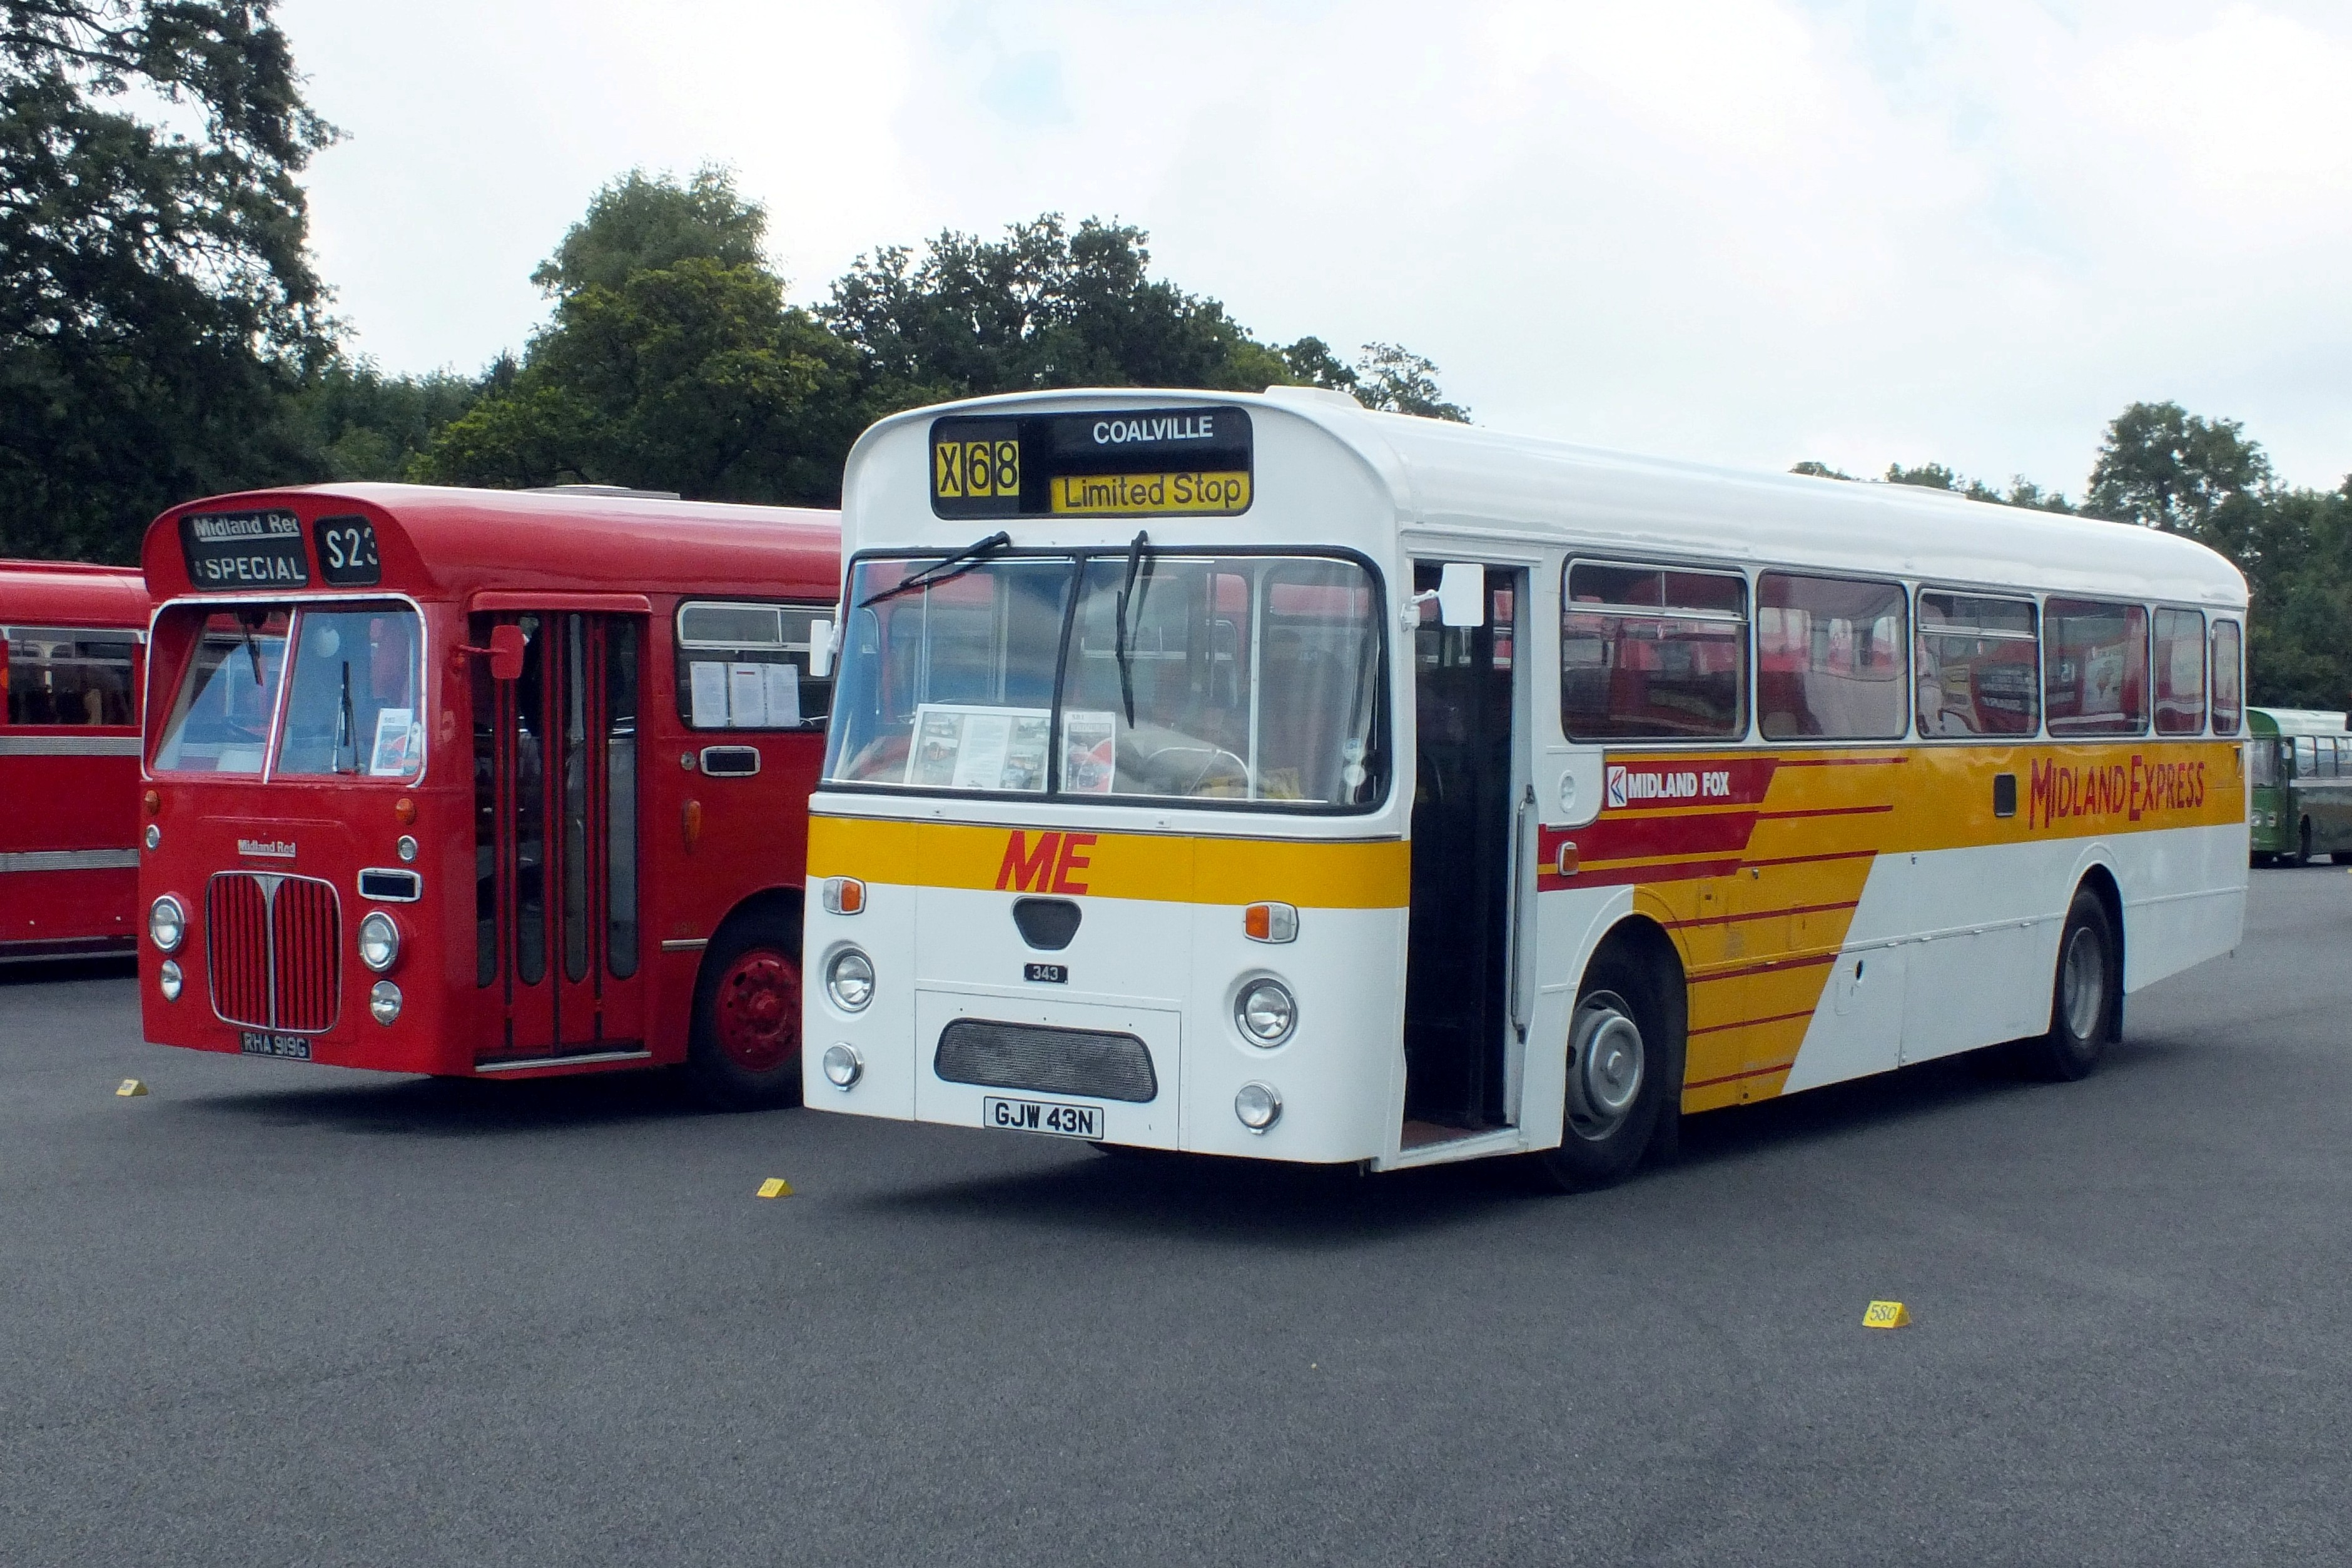 17 September 2017 Showbus, Donington. 425.jpg